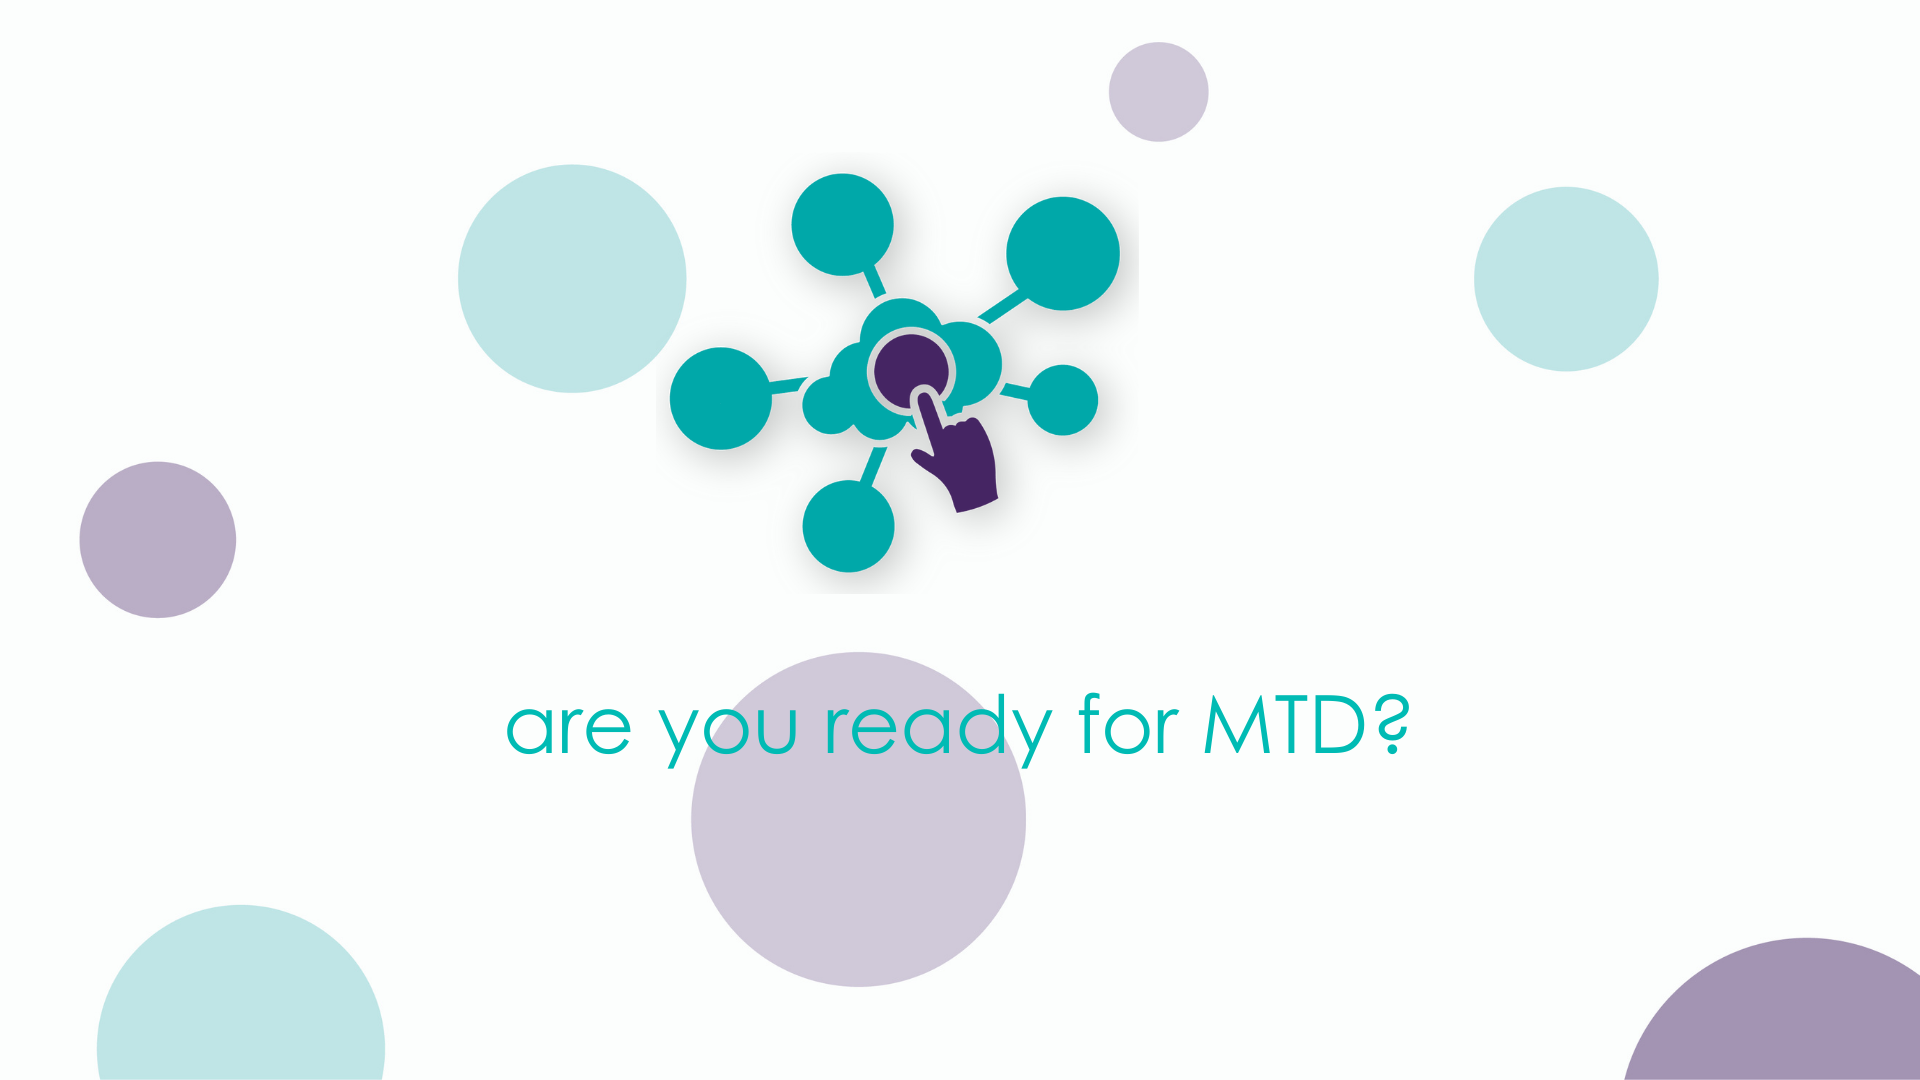 Are you ready for MTD?